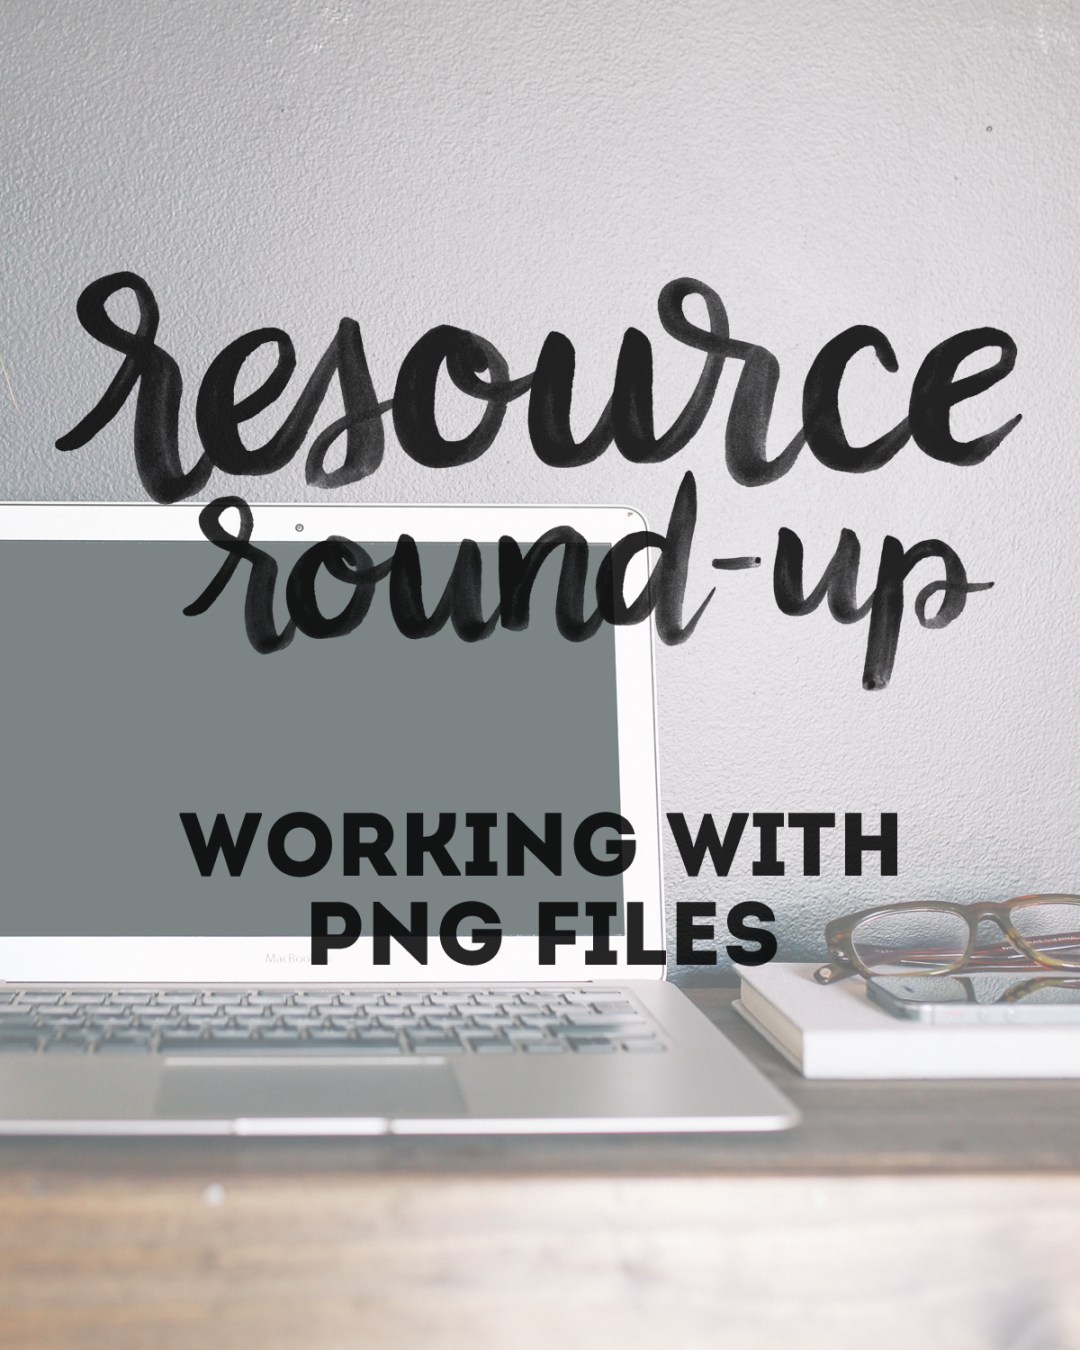 Resource Round-Up: Working with PNG Files - www.randomolive.com